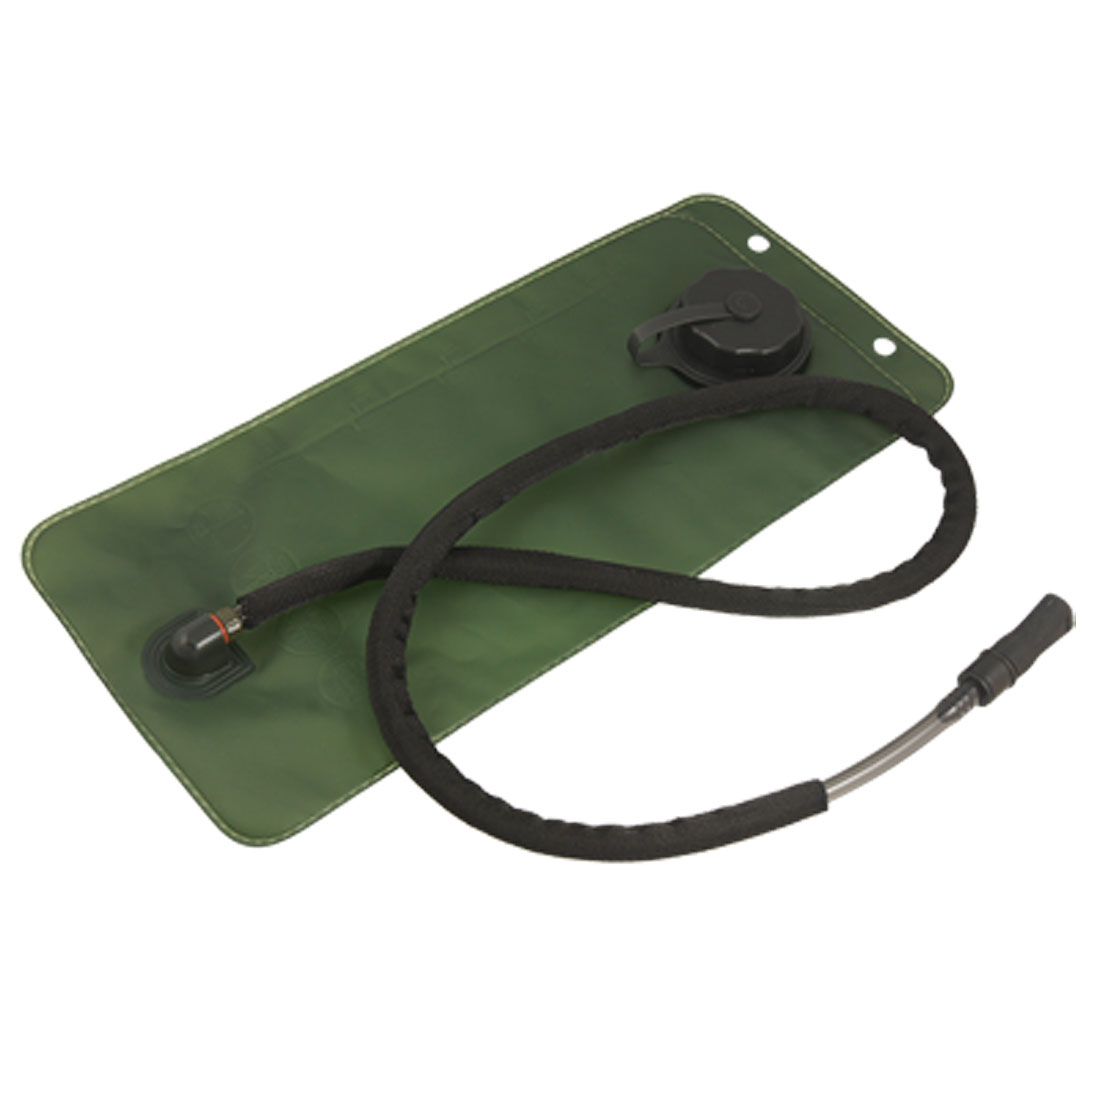 Camping Hiking 2.5L TPU Hydration Water Bladder Bag Holder Army Green